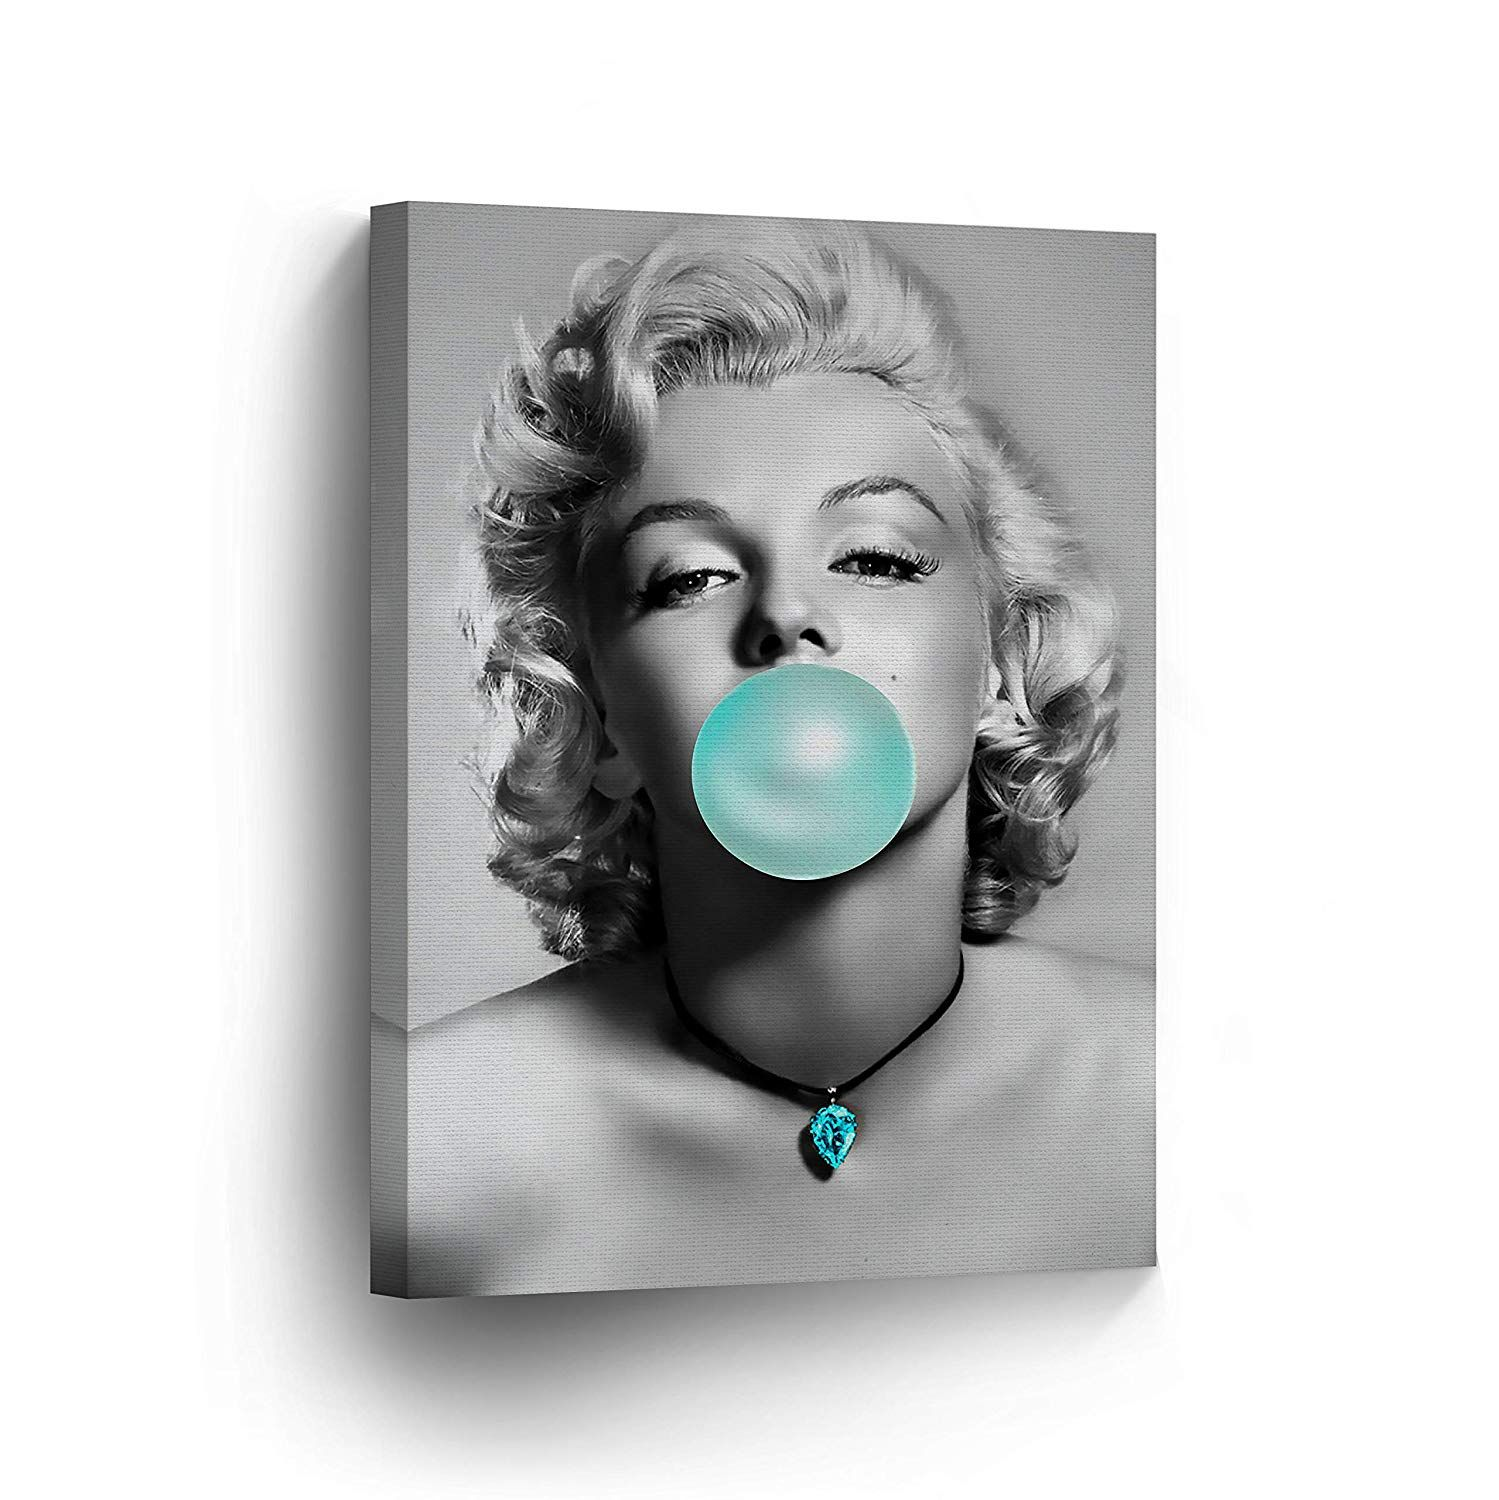 Marilyn monroe bubble gum chewing gum black and white